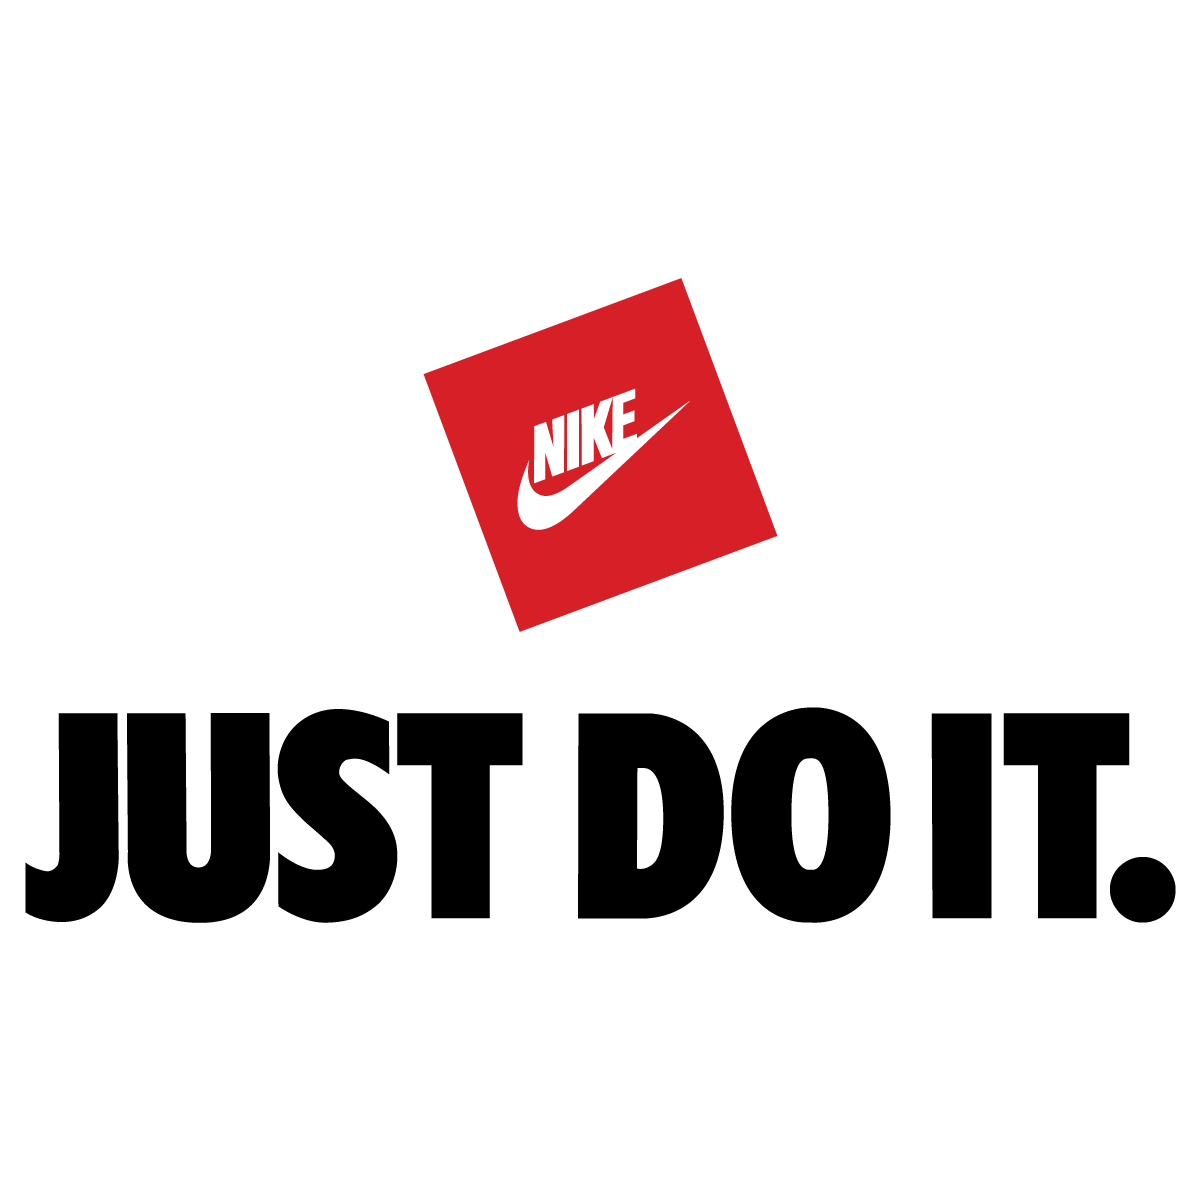 Nike Just Do It Png, png collections at sccpre.cat.